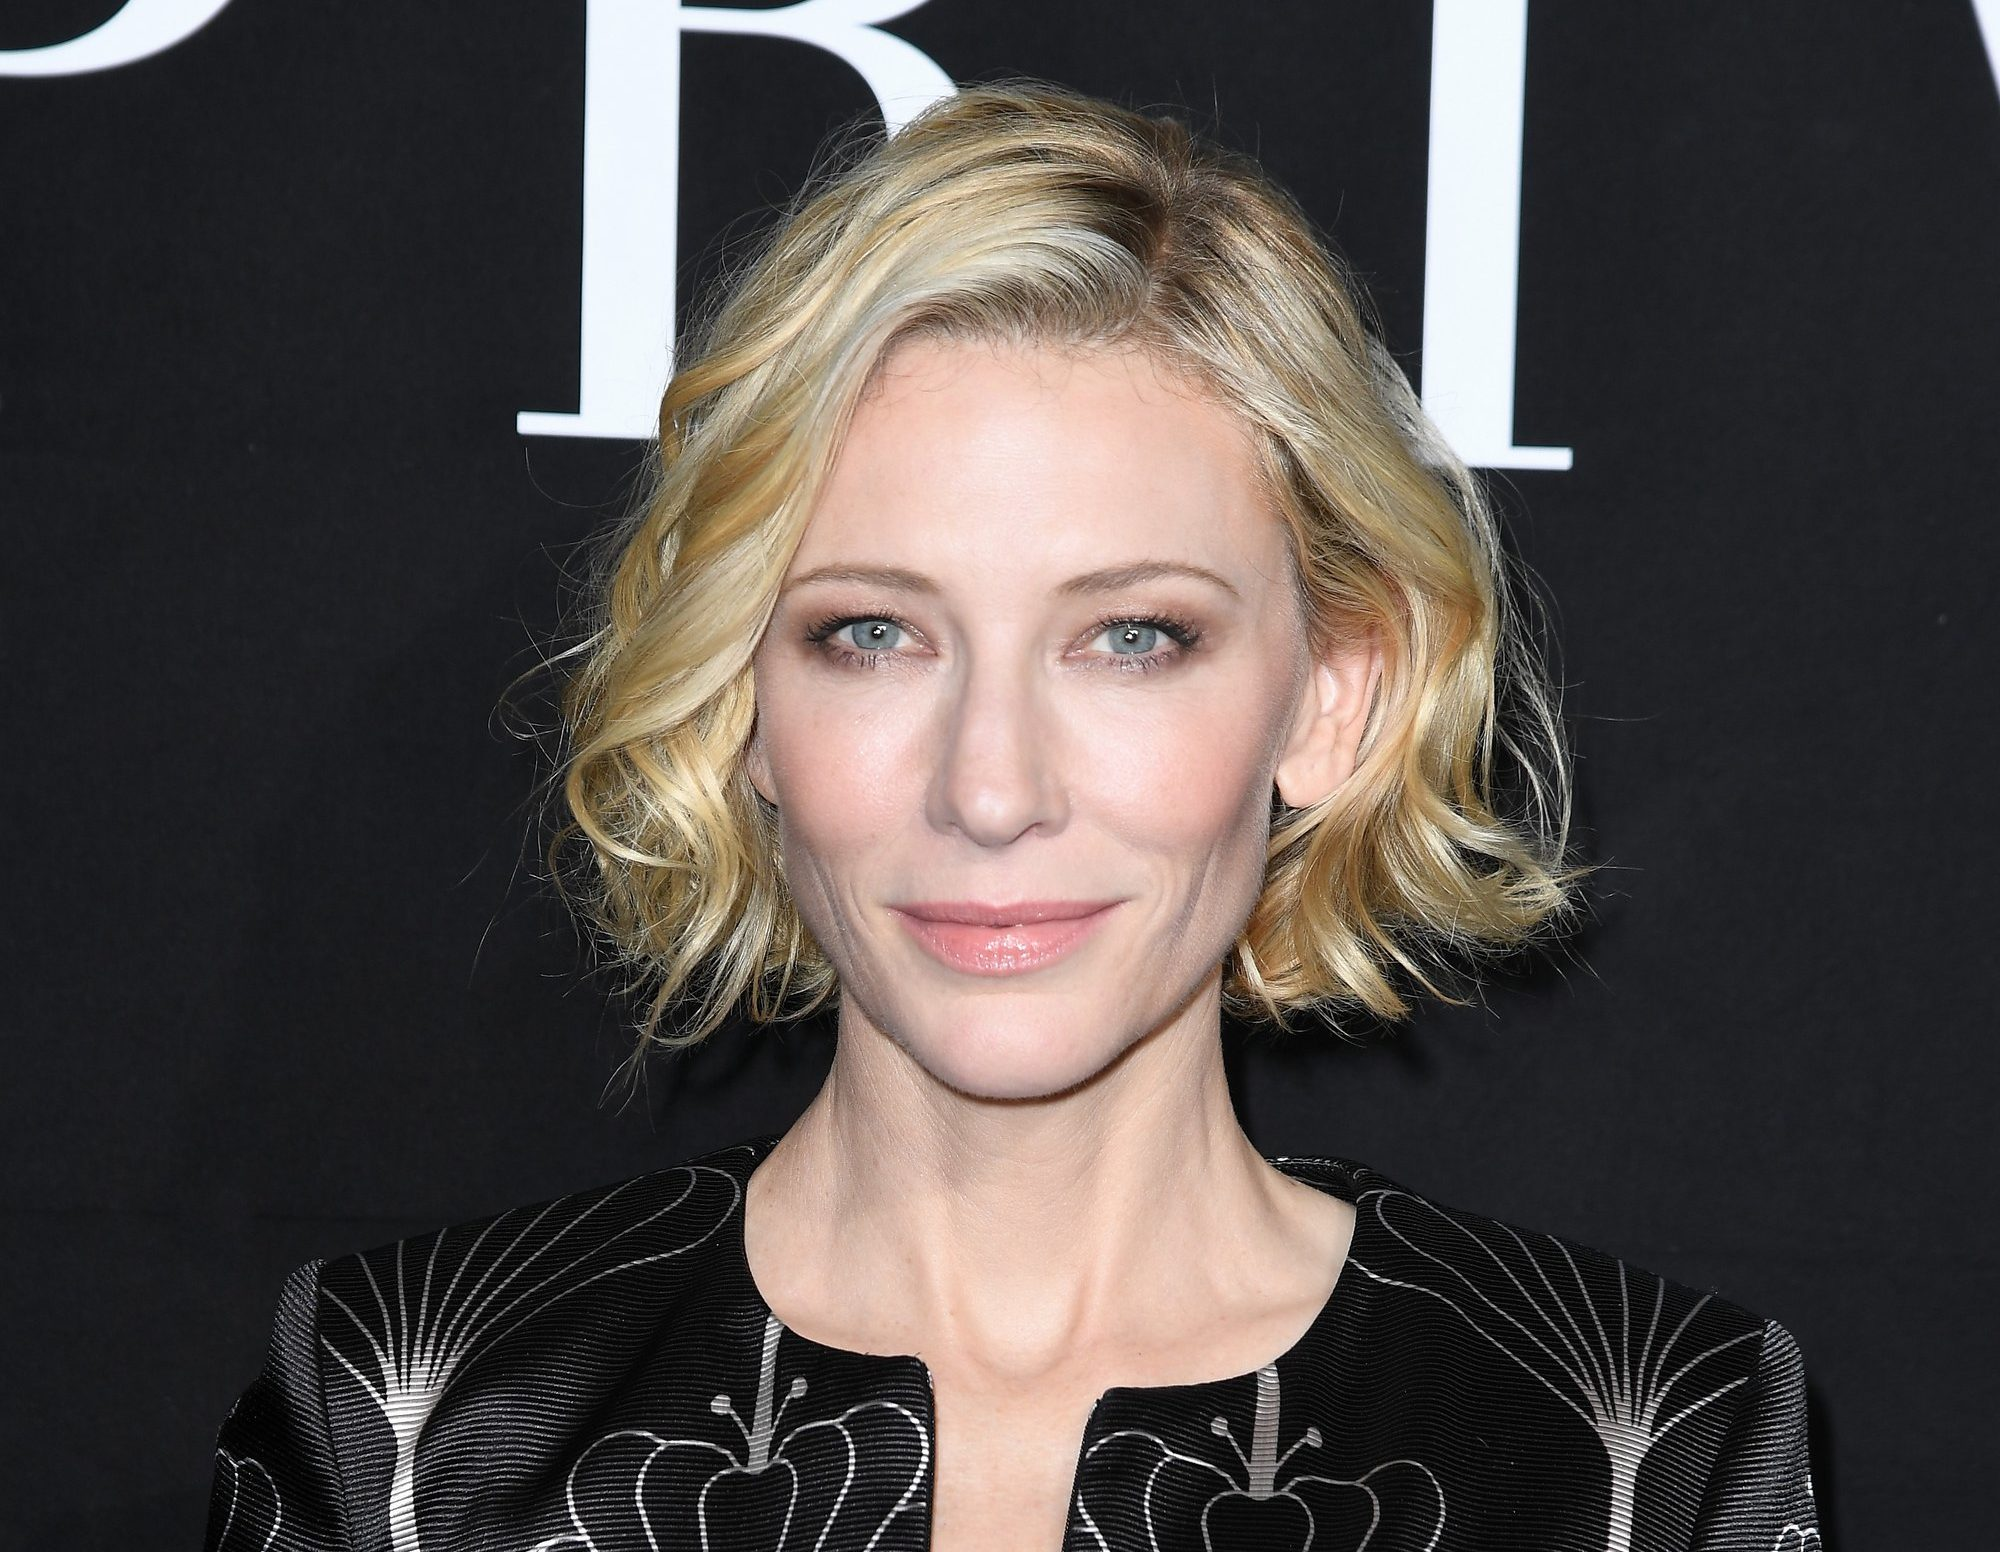 New promotional interview with Cate Blanchett #SaySì